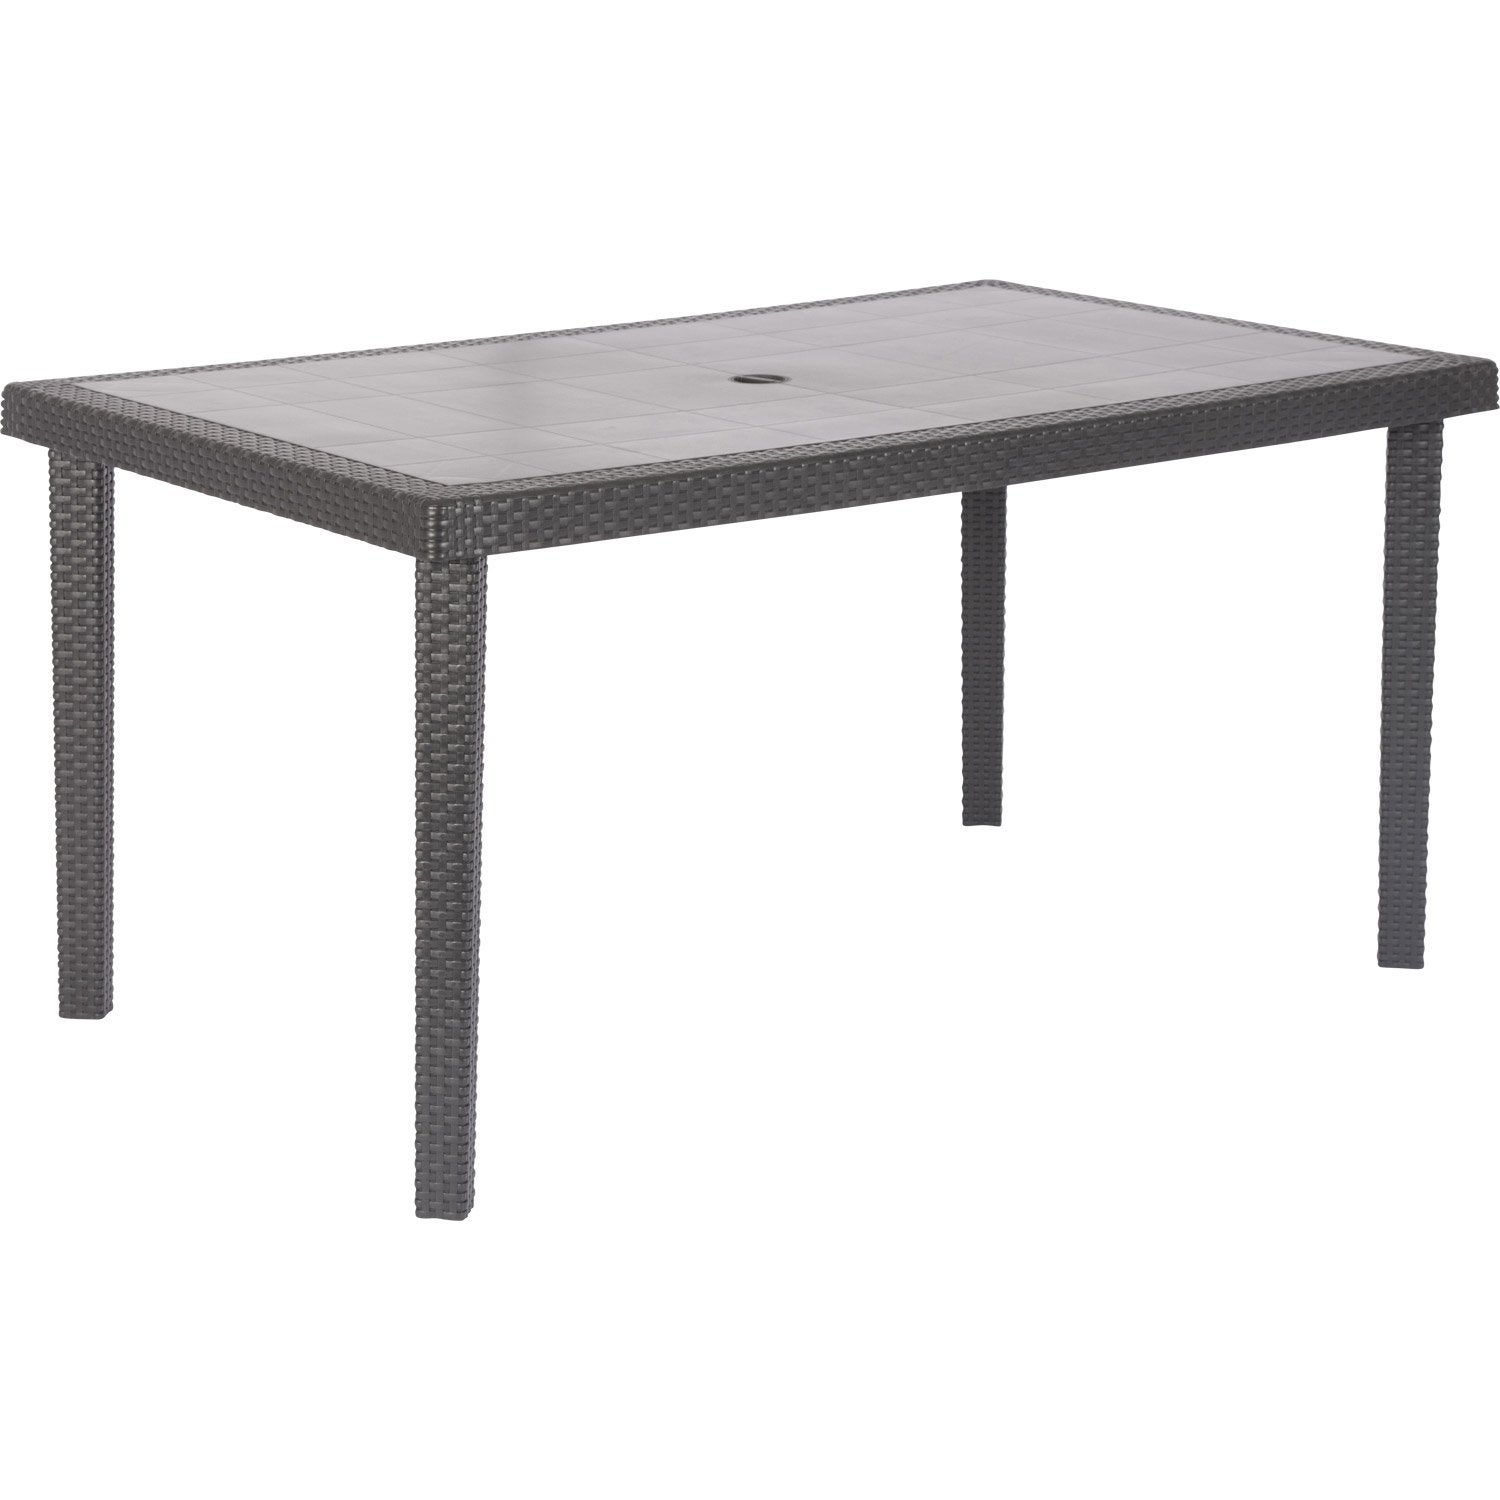 Table exterieur for Castorama exterieur table